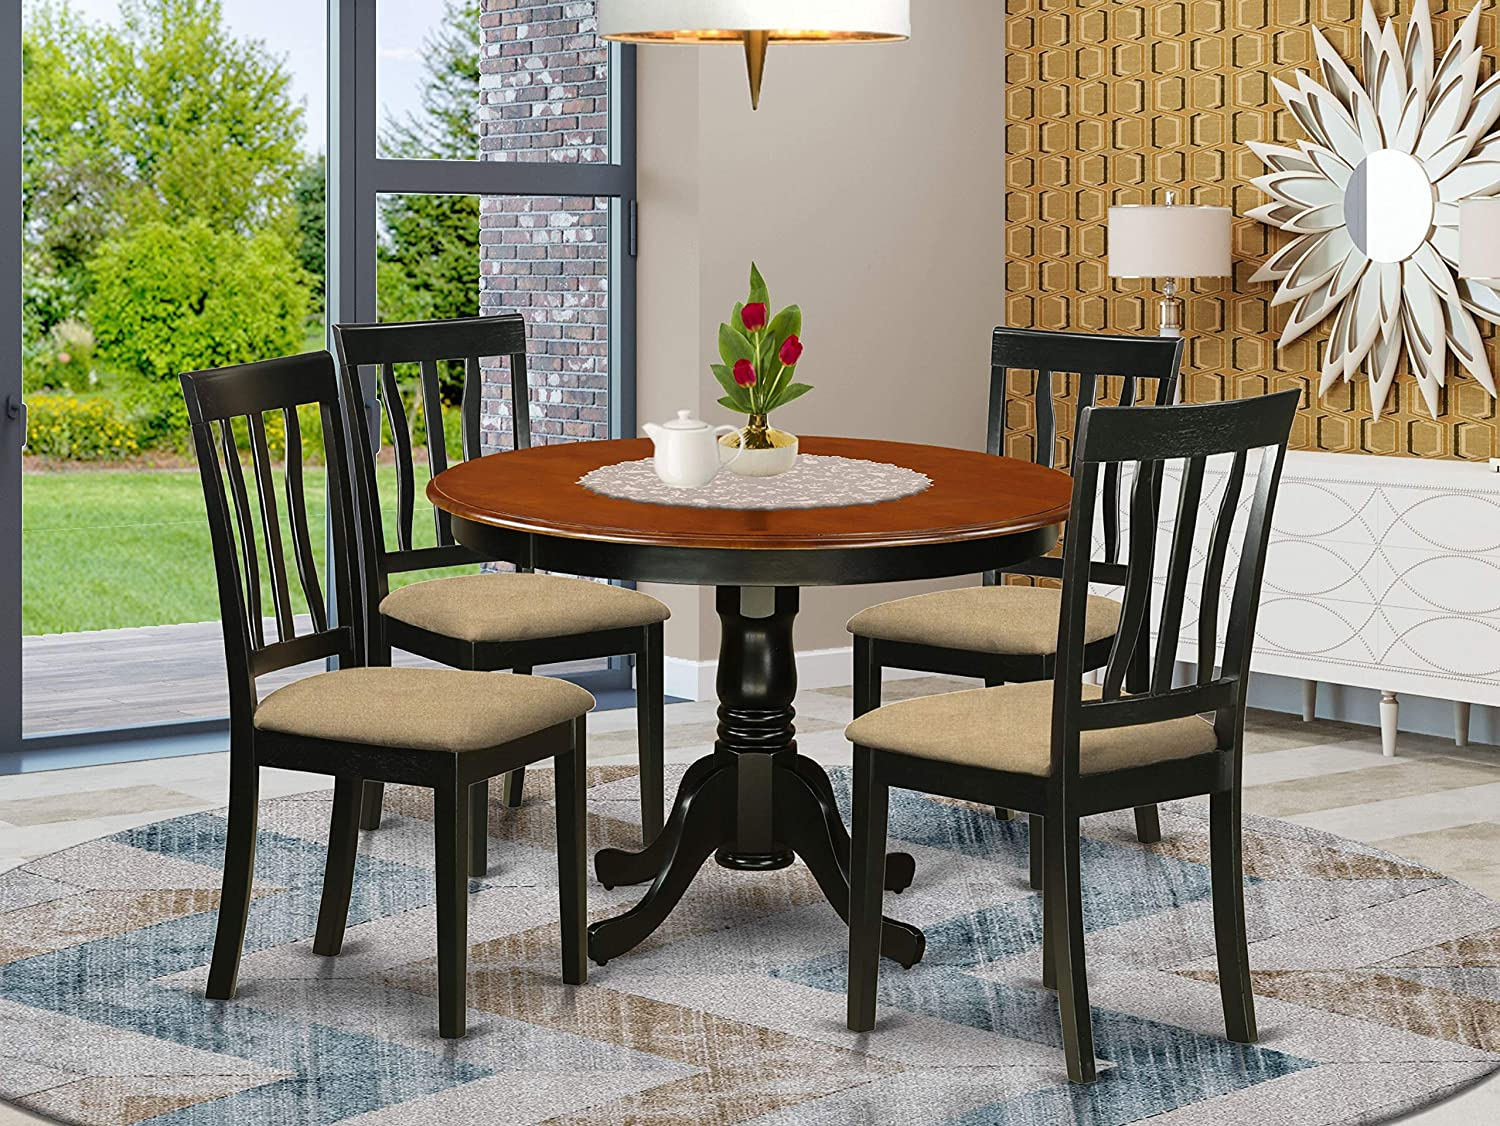 East West Furniture HLAN5-BCH-C 5-Piece Dining Table Set - A Modern Round Dining Table and 4 Dining Chairs - Linen Fabric Modern Kitchen Chairs Seat & Slatted Back - Black Finish